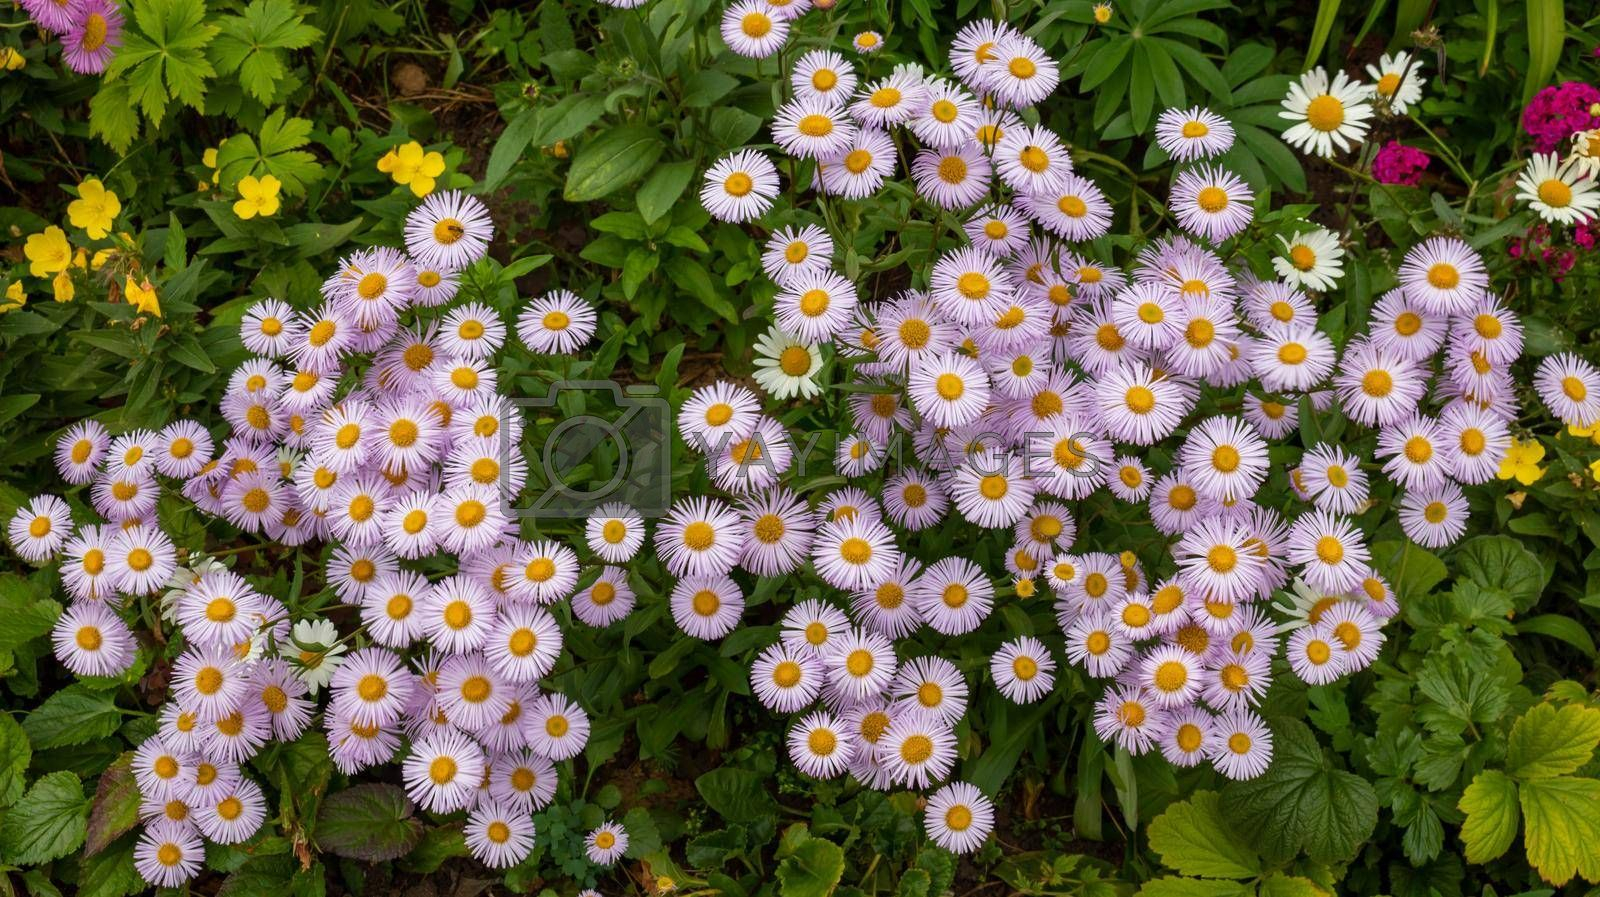 Pink wild daisies, background of spring flowers.